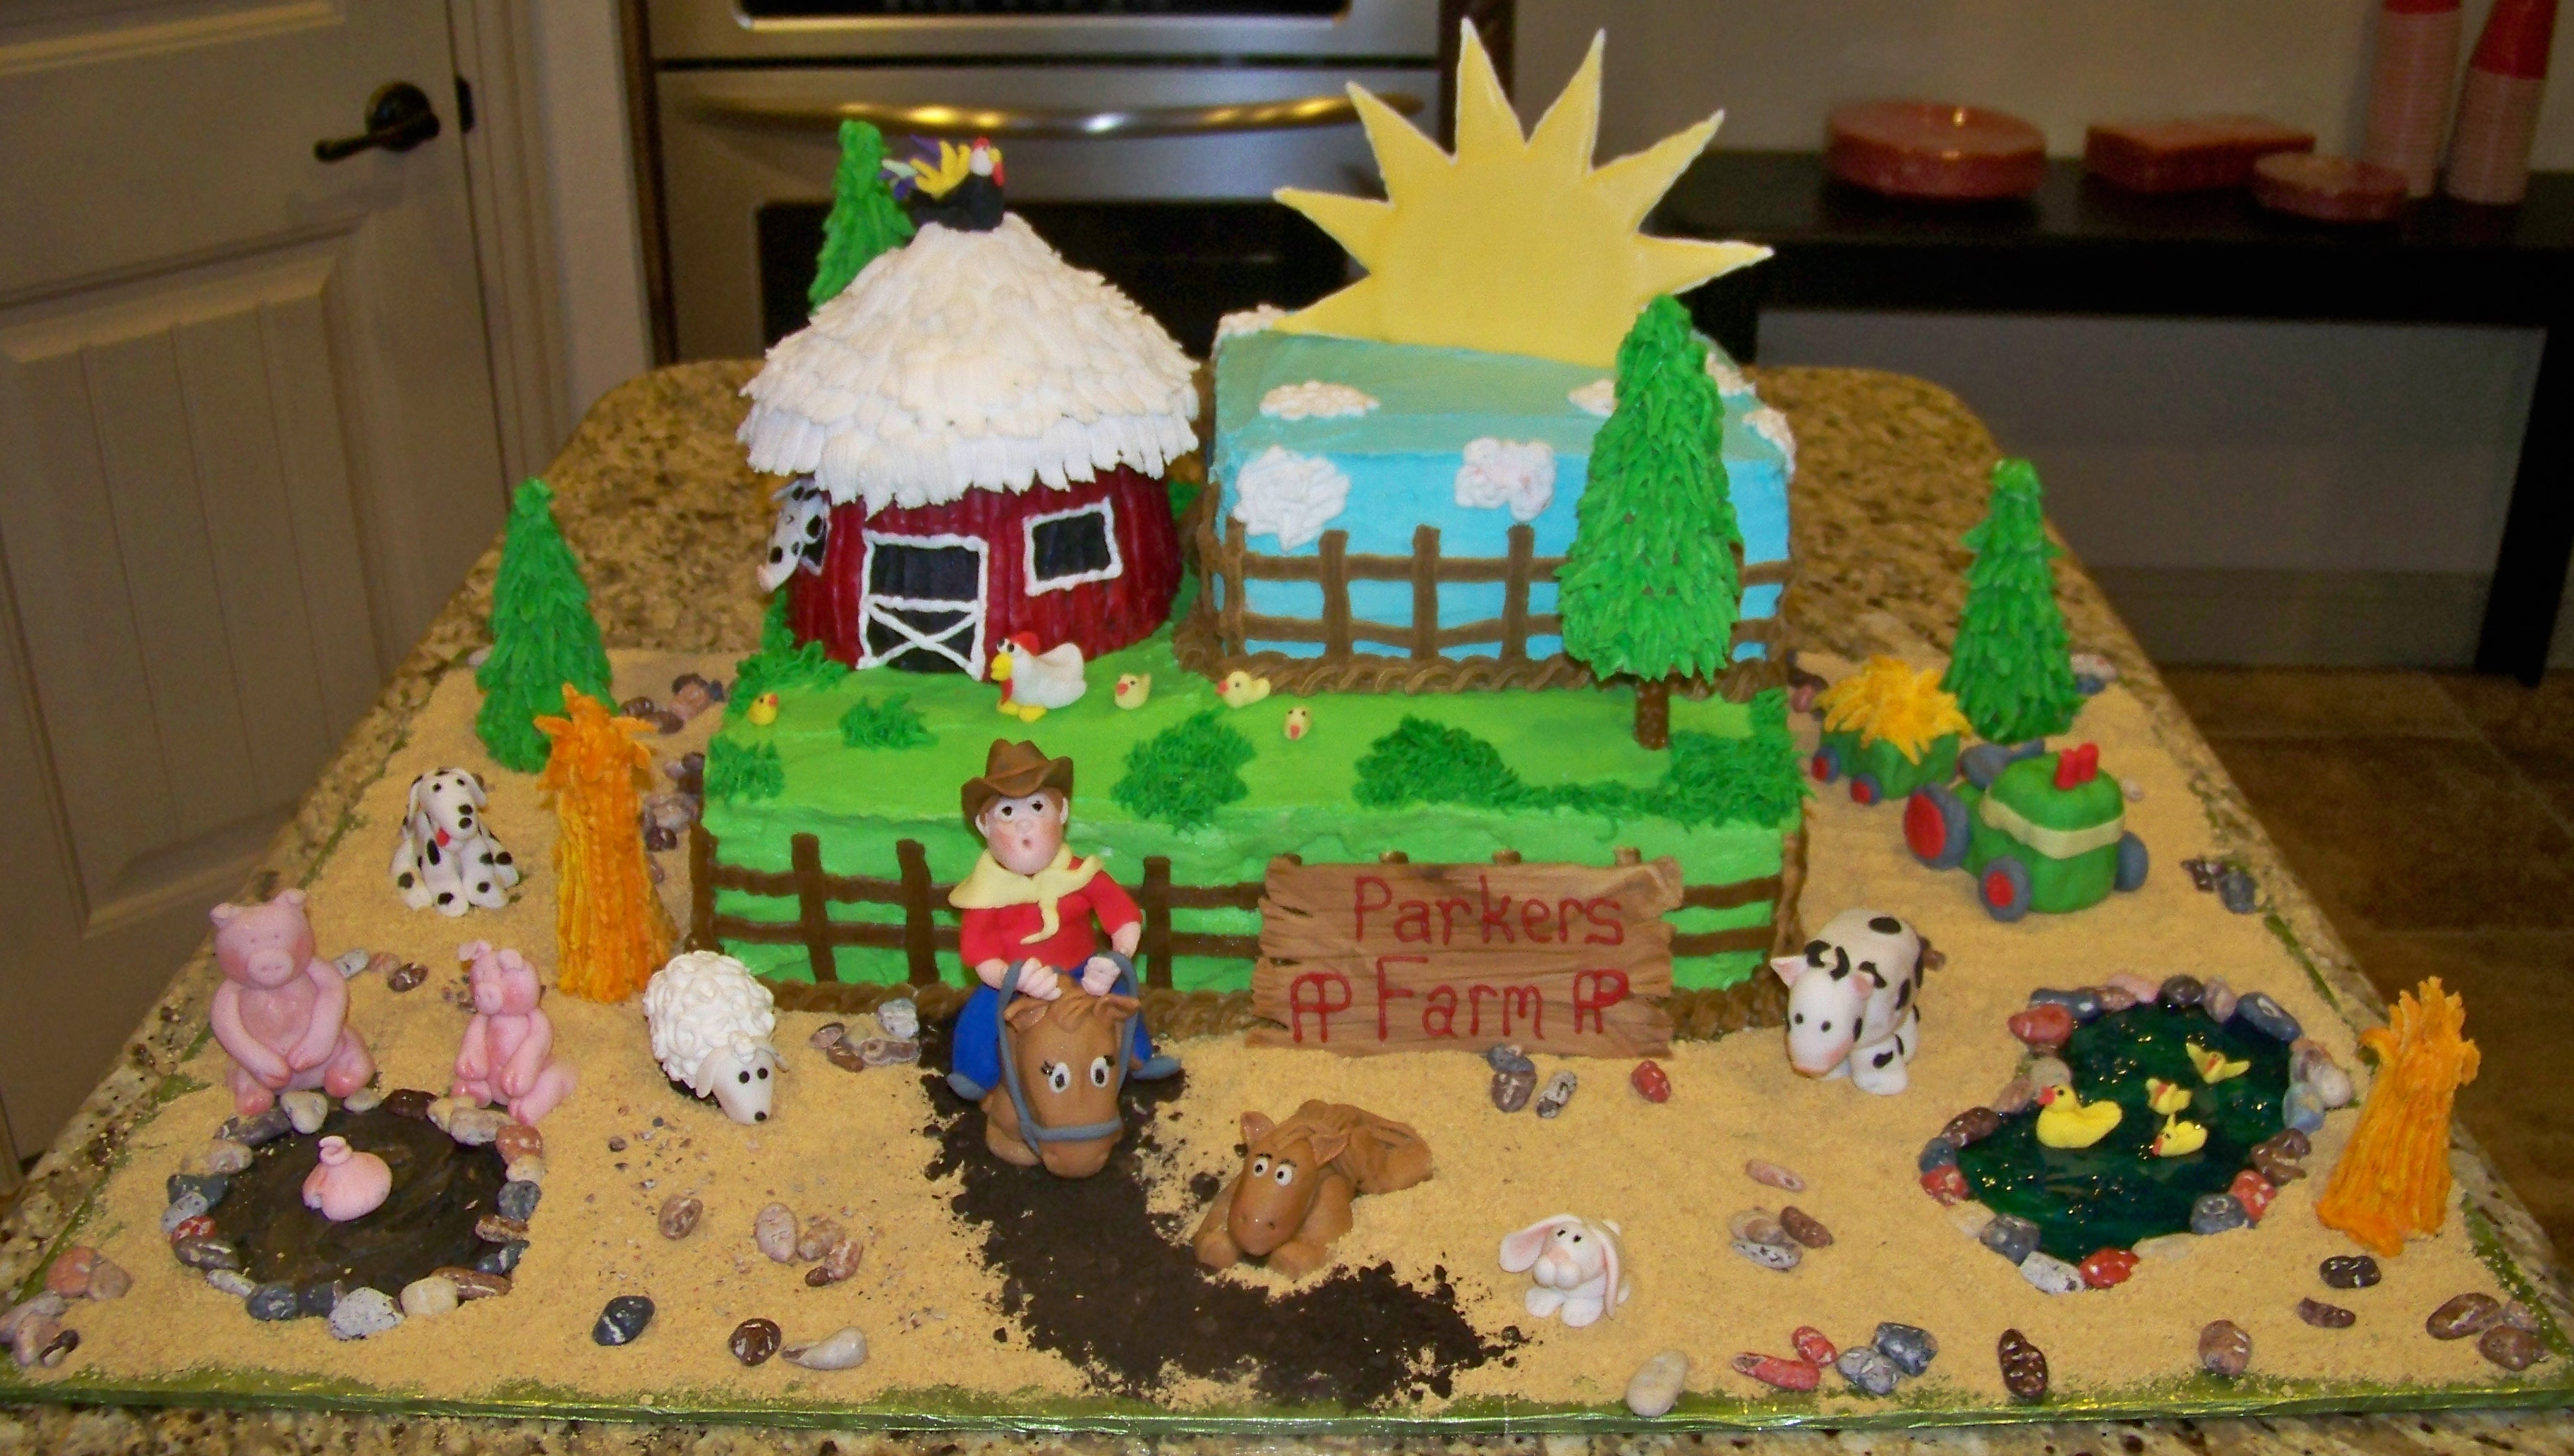 Farm scene with fondant farm animals, a little boy sitting on a horse, barn and a large colorflow sun.